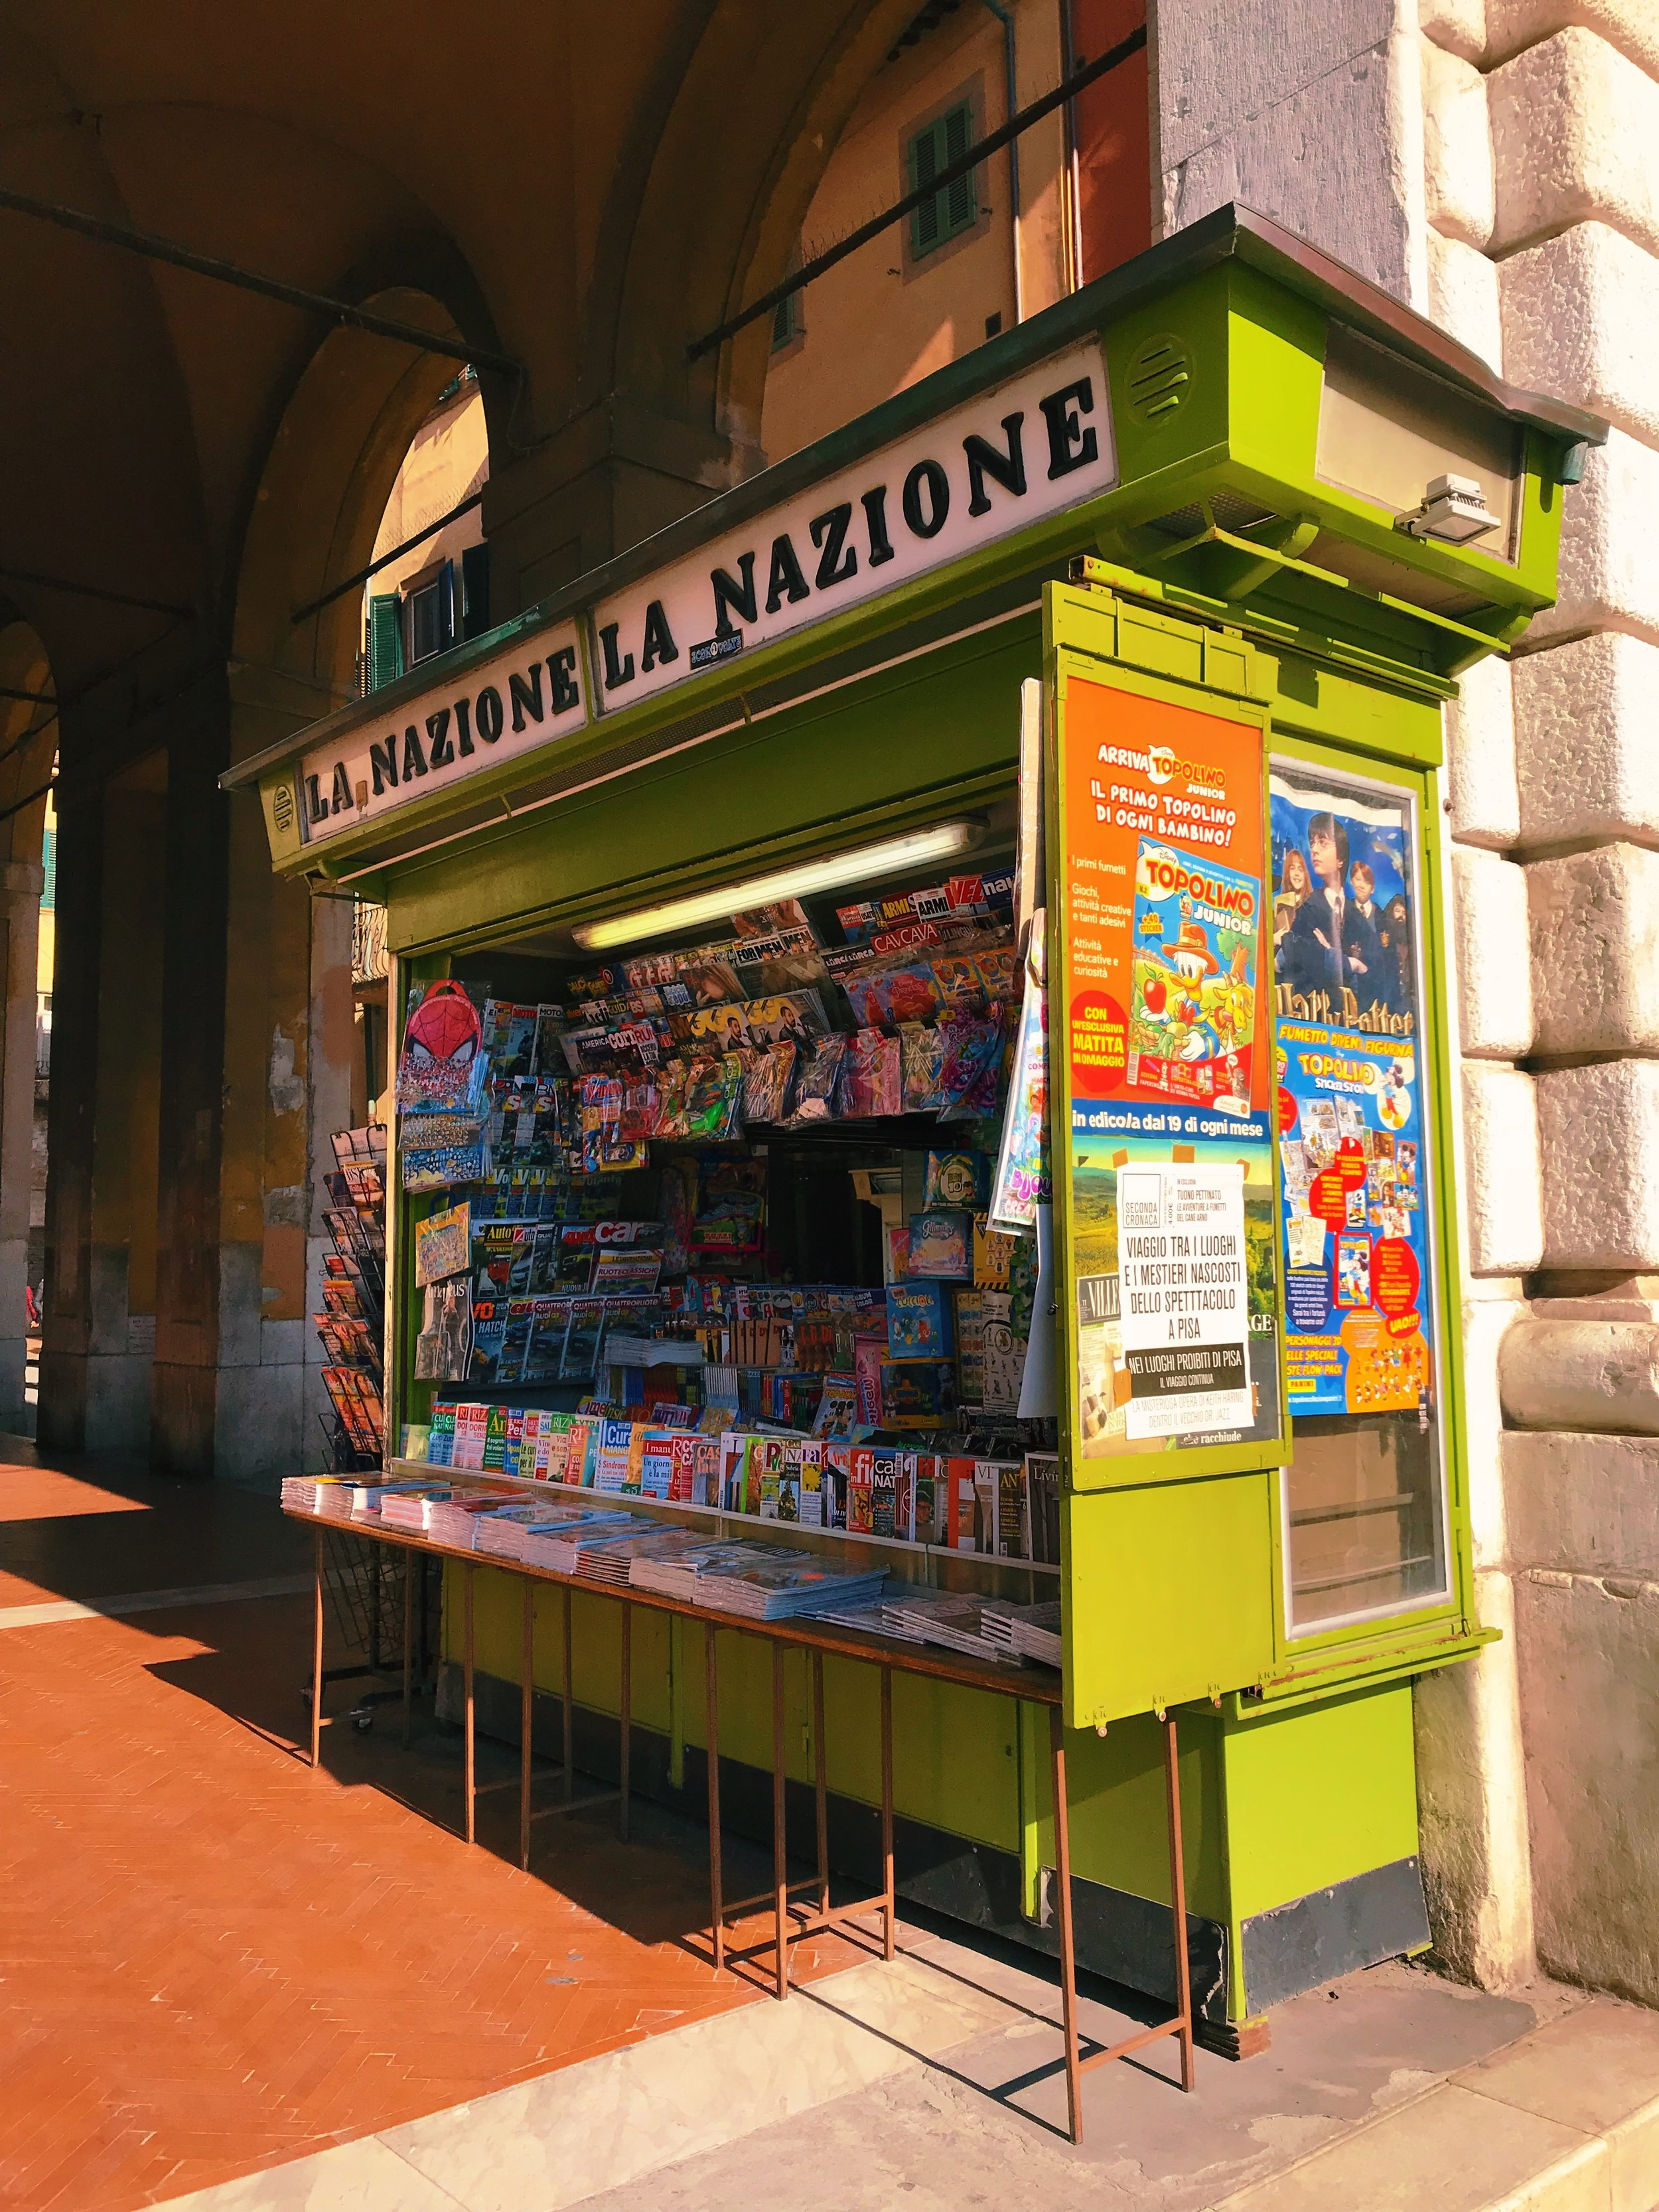 Typical newsstand, or  edicola , where you can purchase magazines, as well as bus tickets.